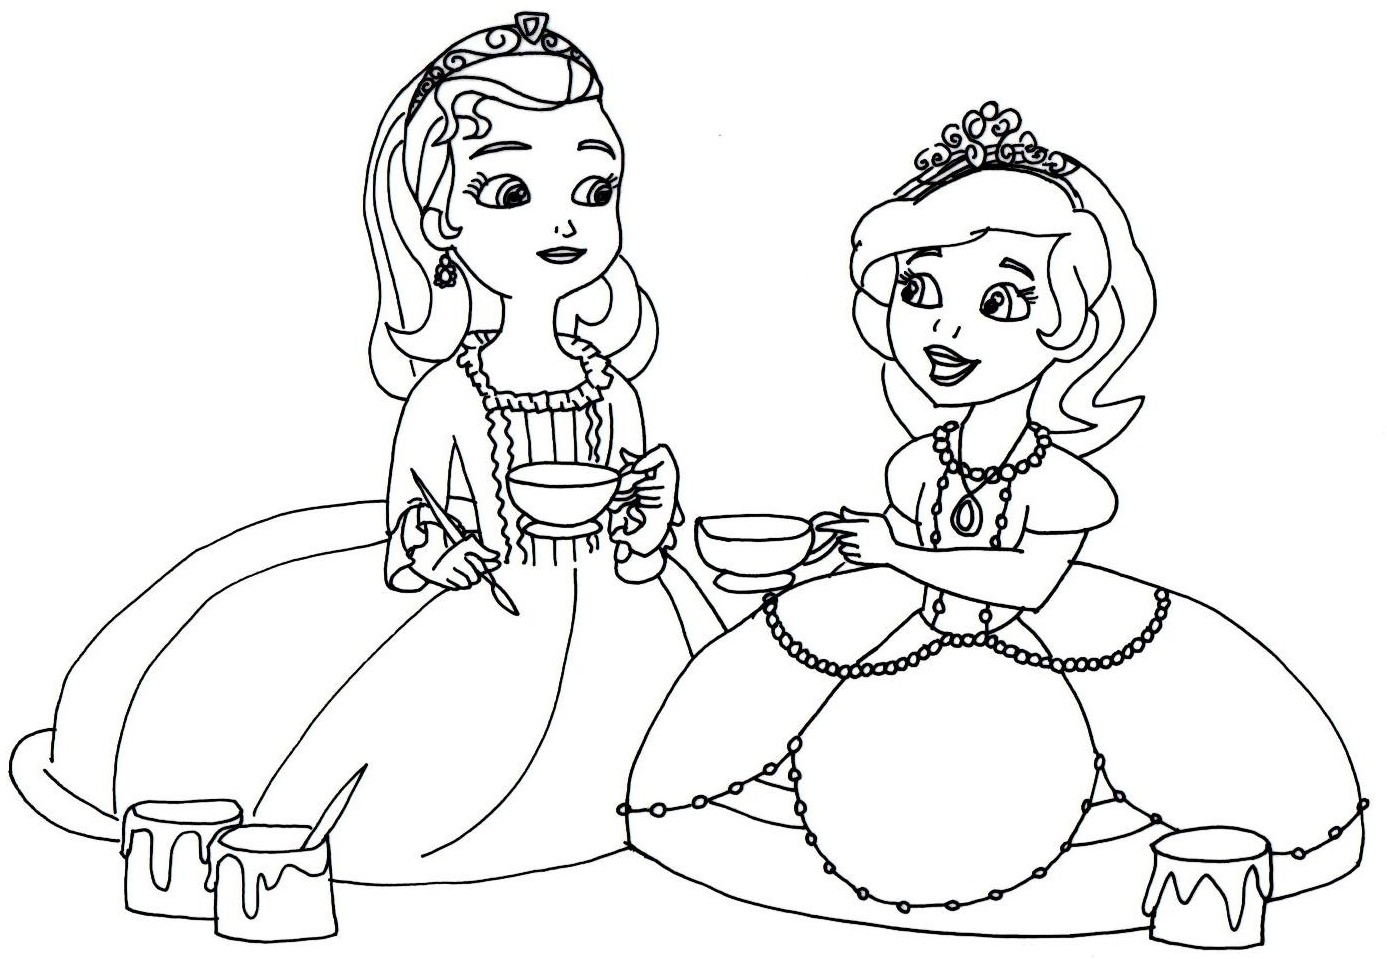 1387x959 Tea Party Coloring Pages Coloringsuite Com With Qqa Me